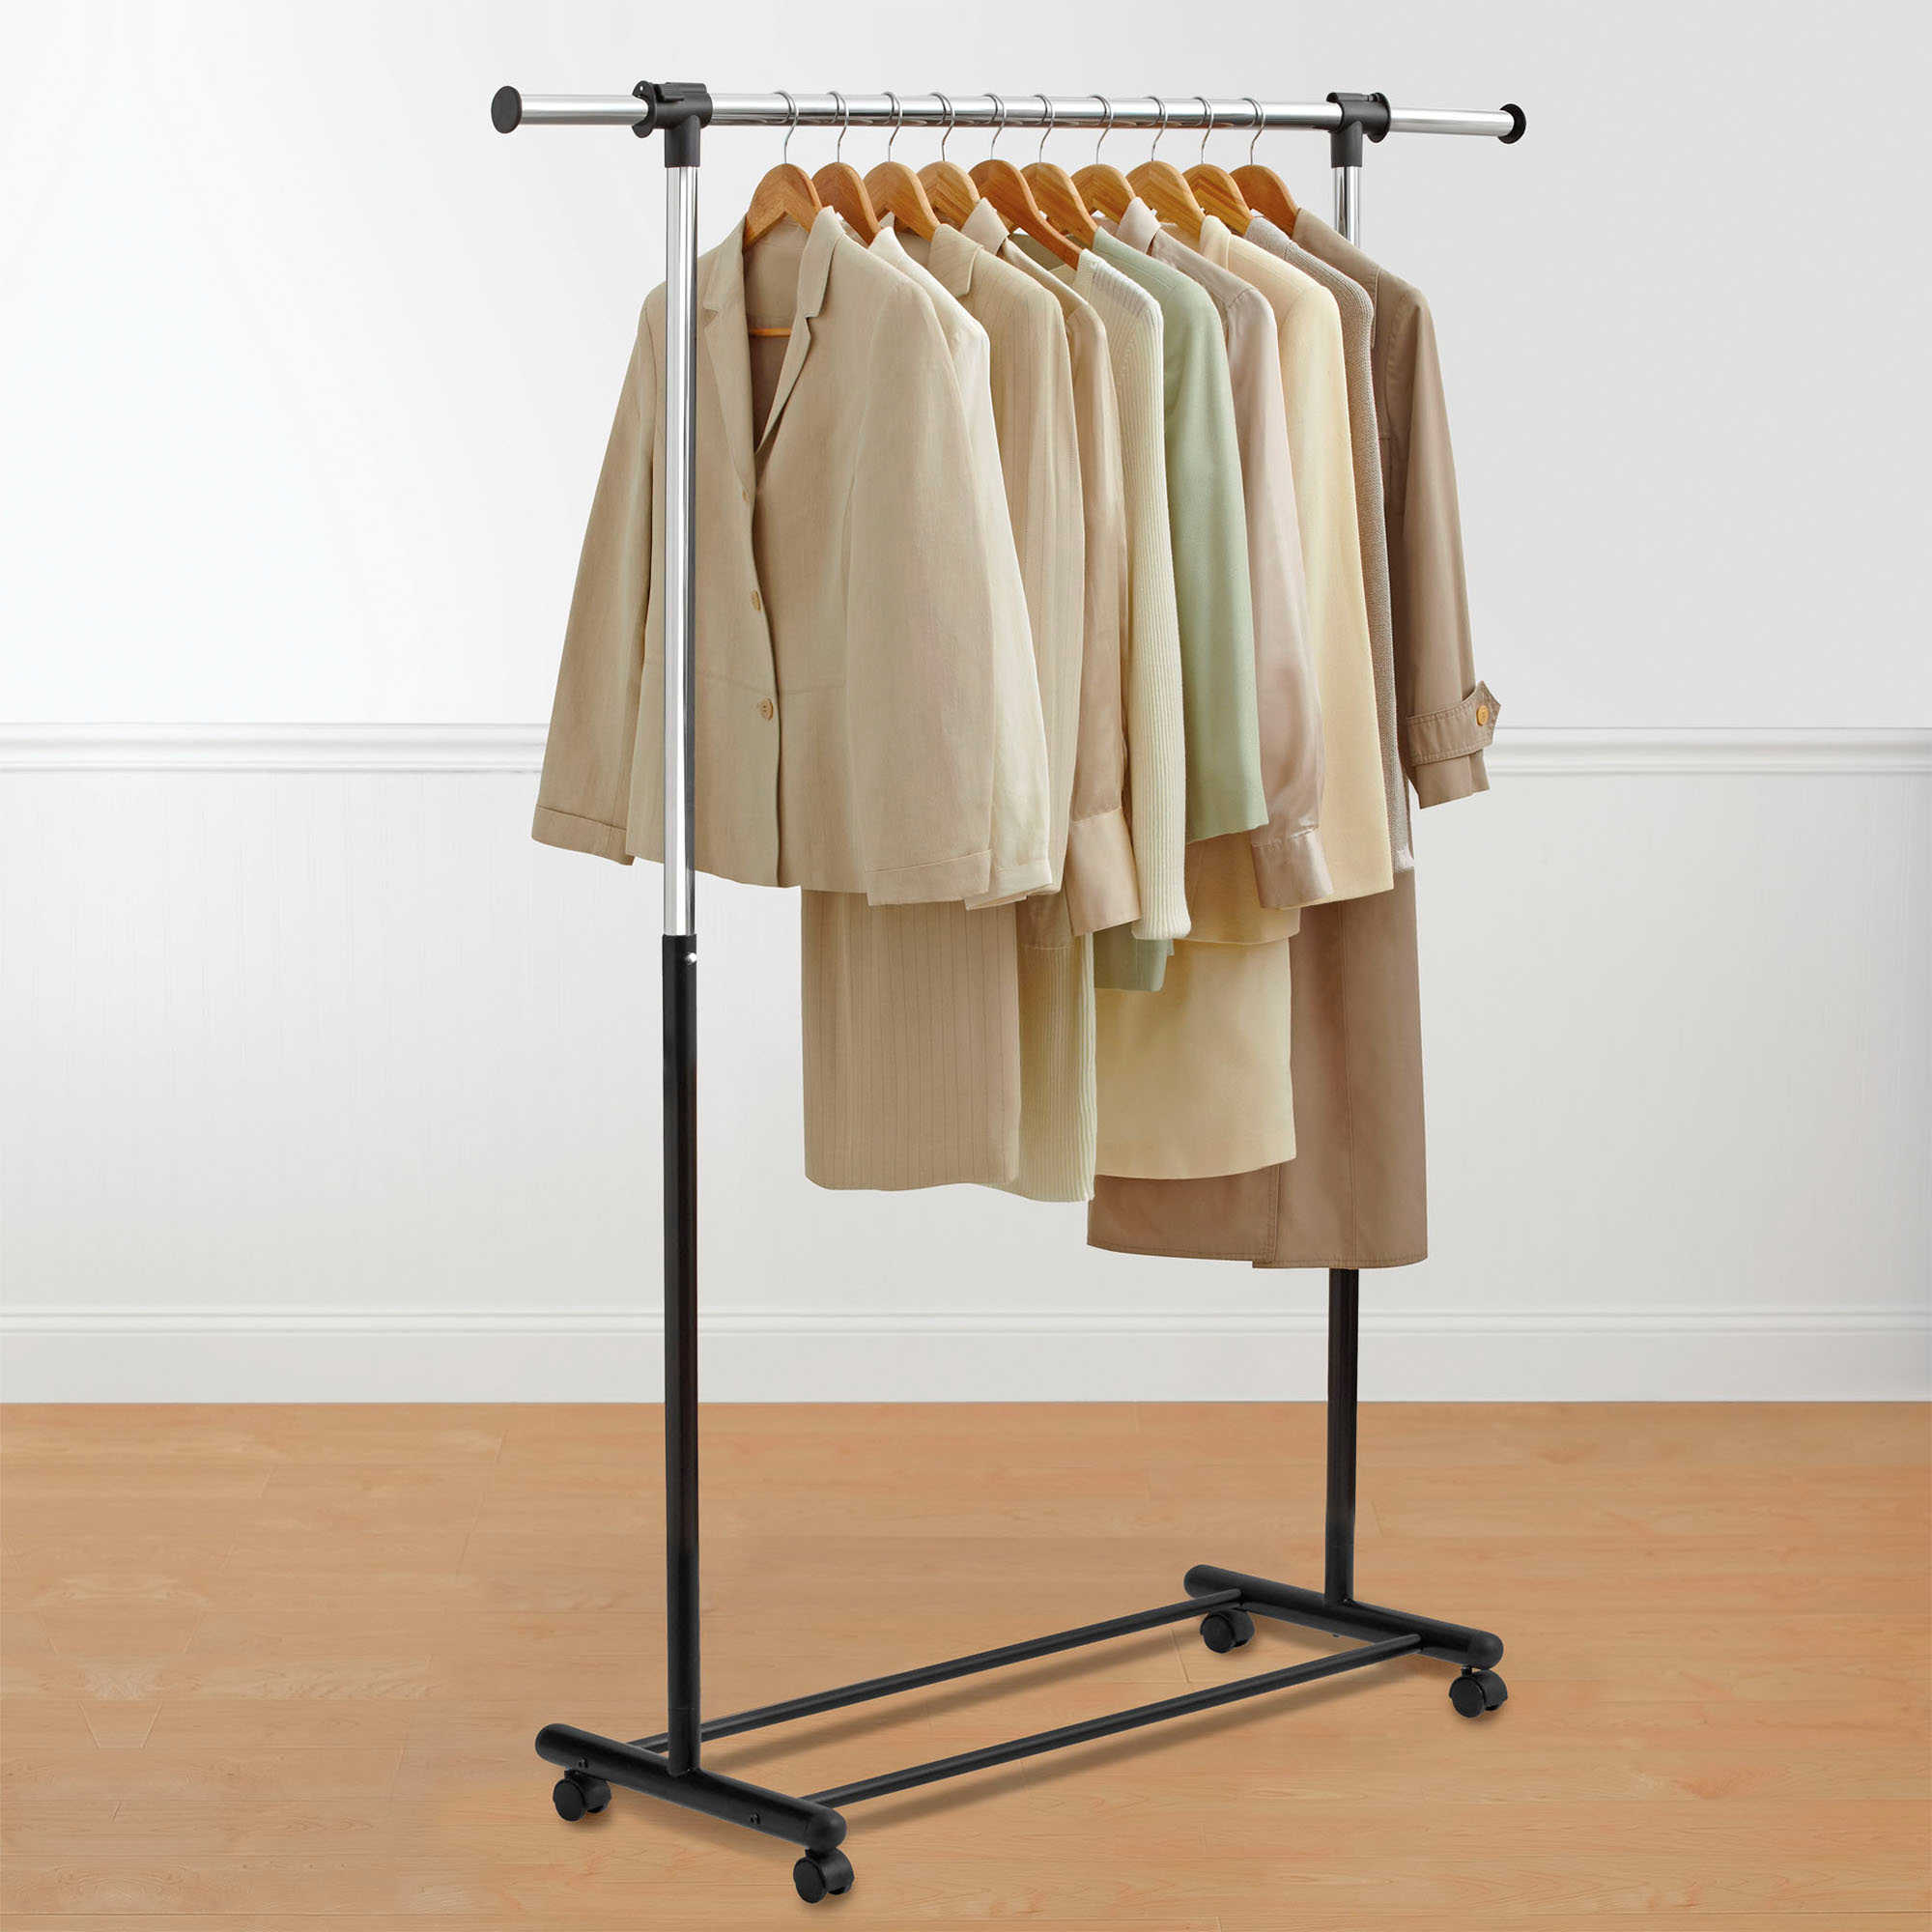 Cloth Rack Dress For Success - Das Tor